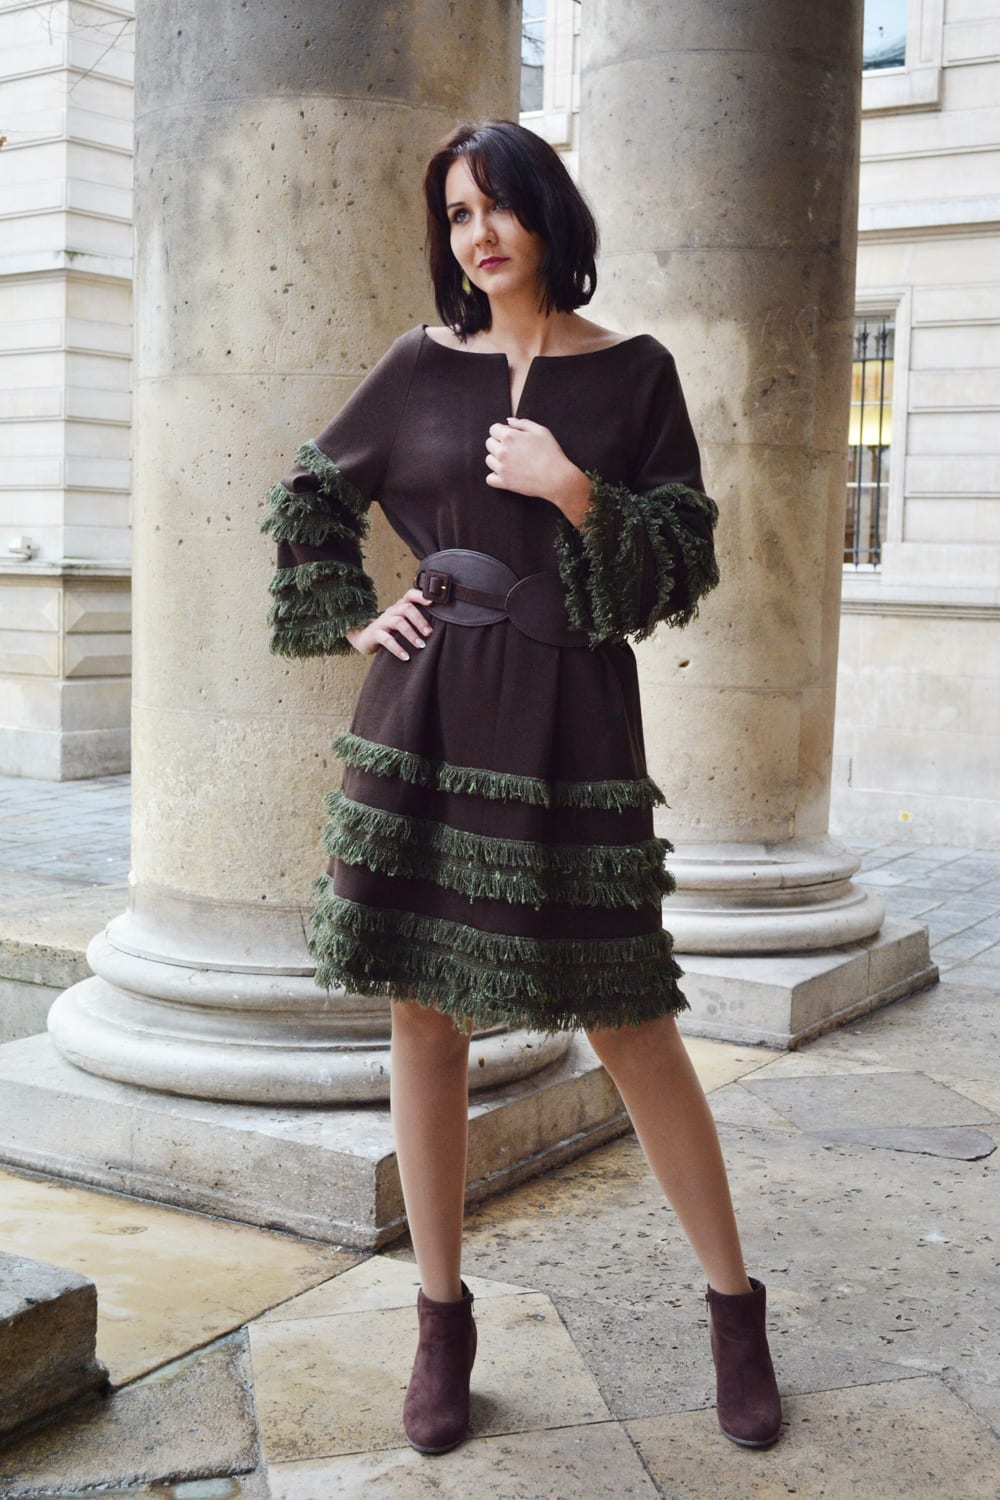 erik-schaix-couturier-paris-collection-hiver-2018-robe-laine-3